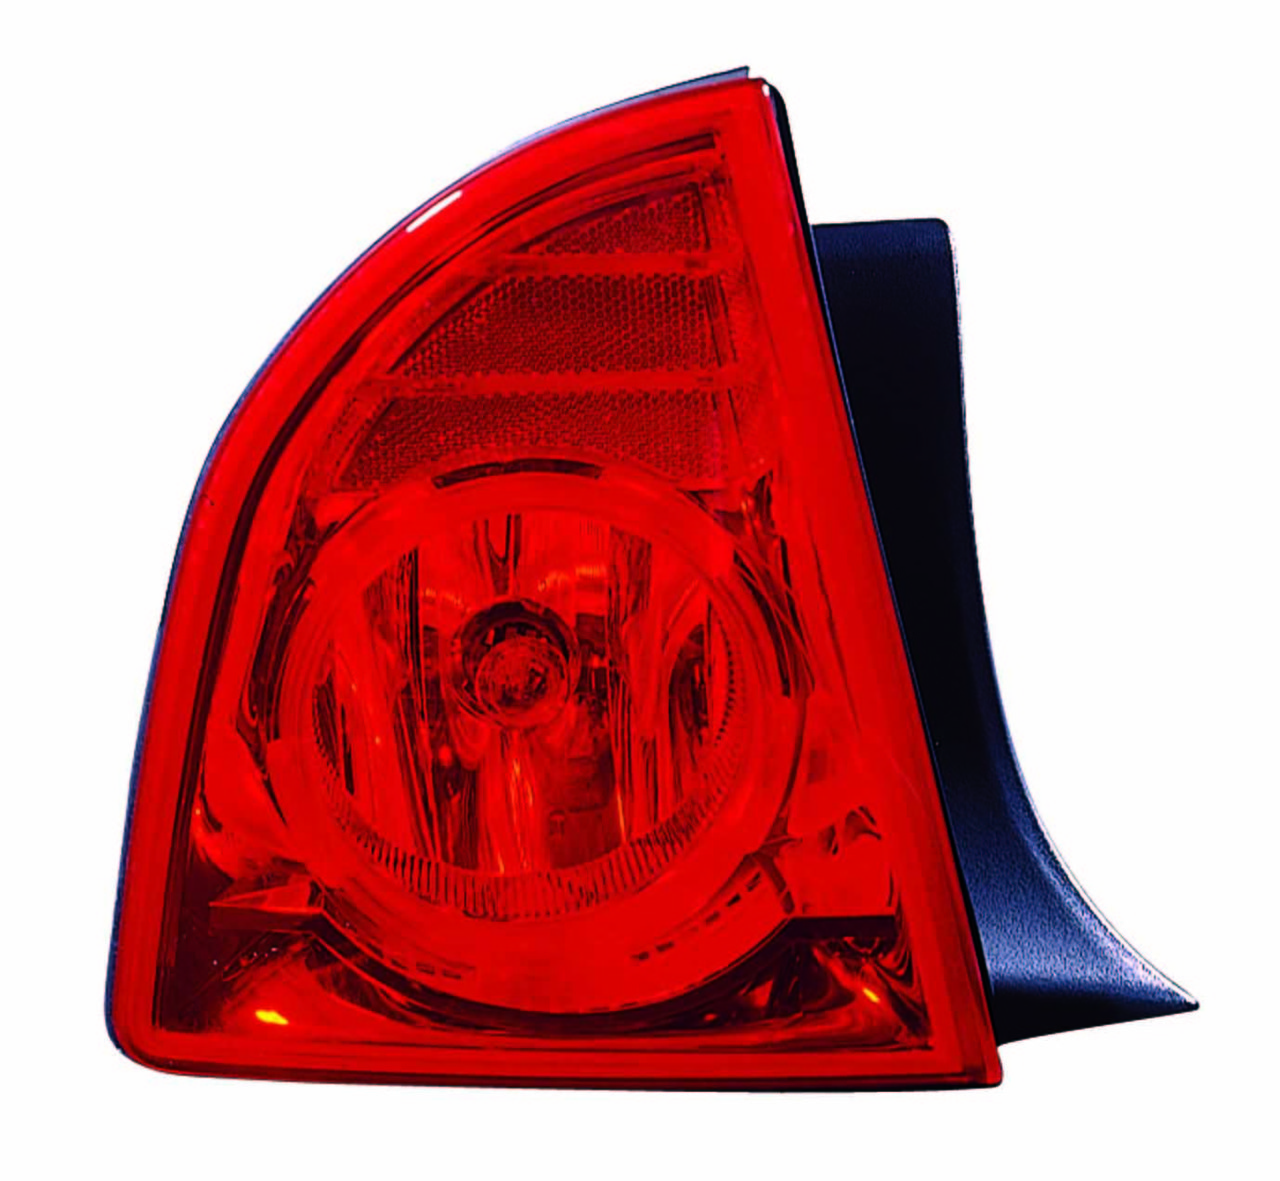 Chevrolet Malibu Sedan 2008 2009 2010 2011 2012 tail light left driver